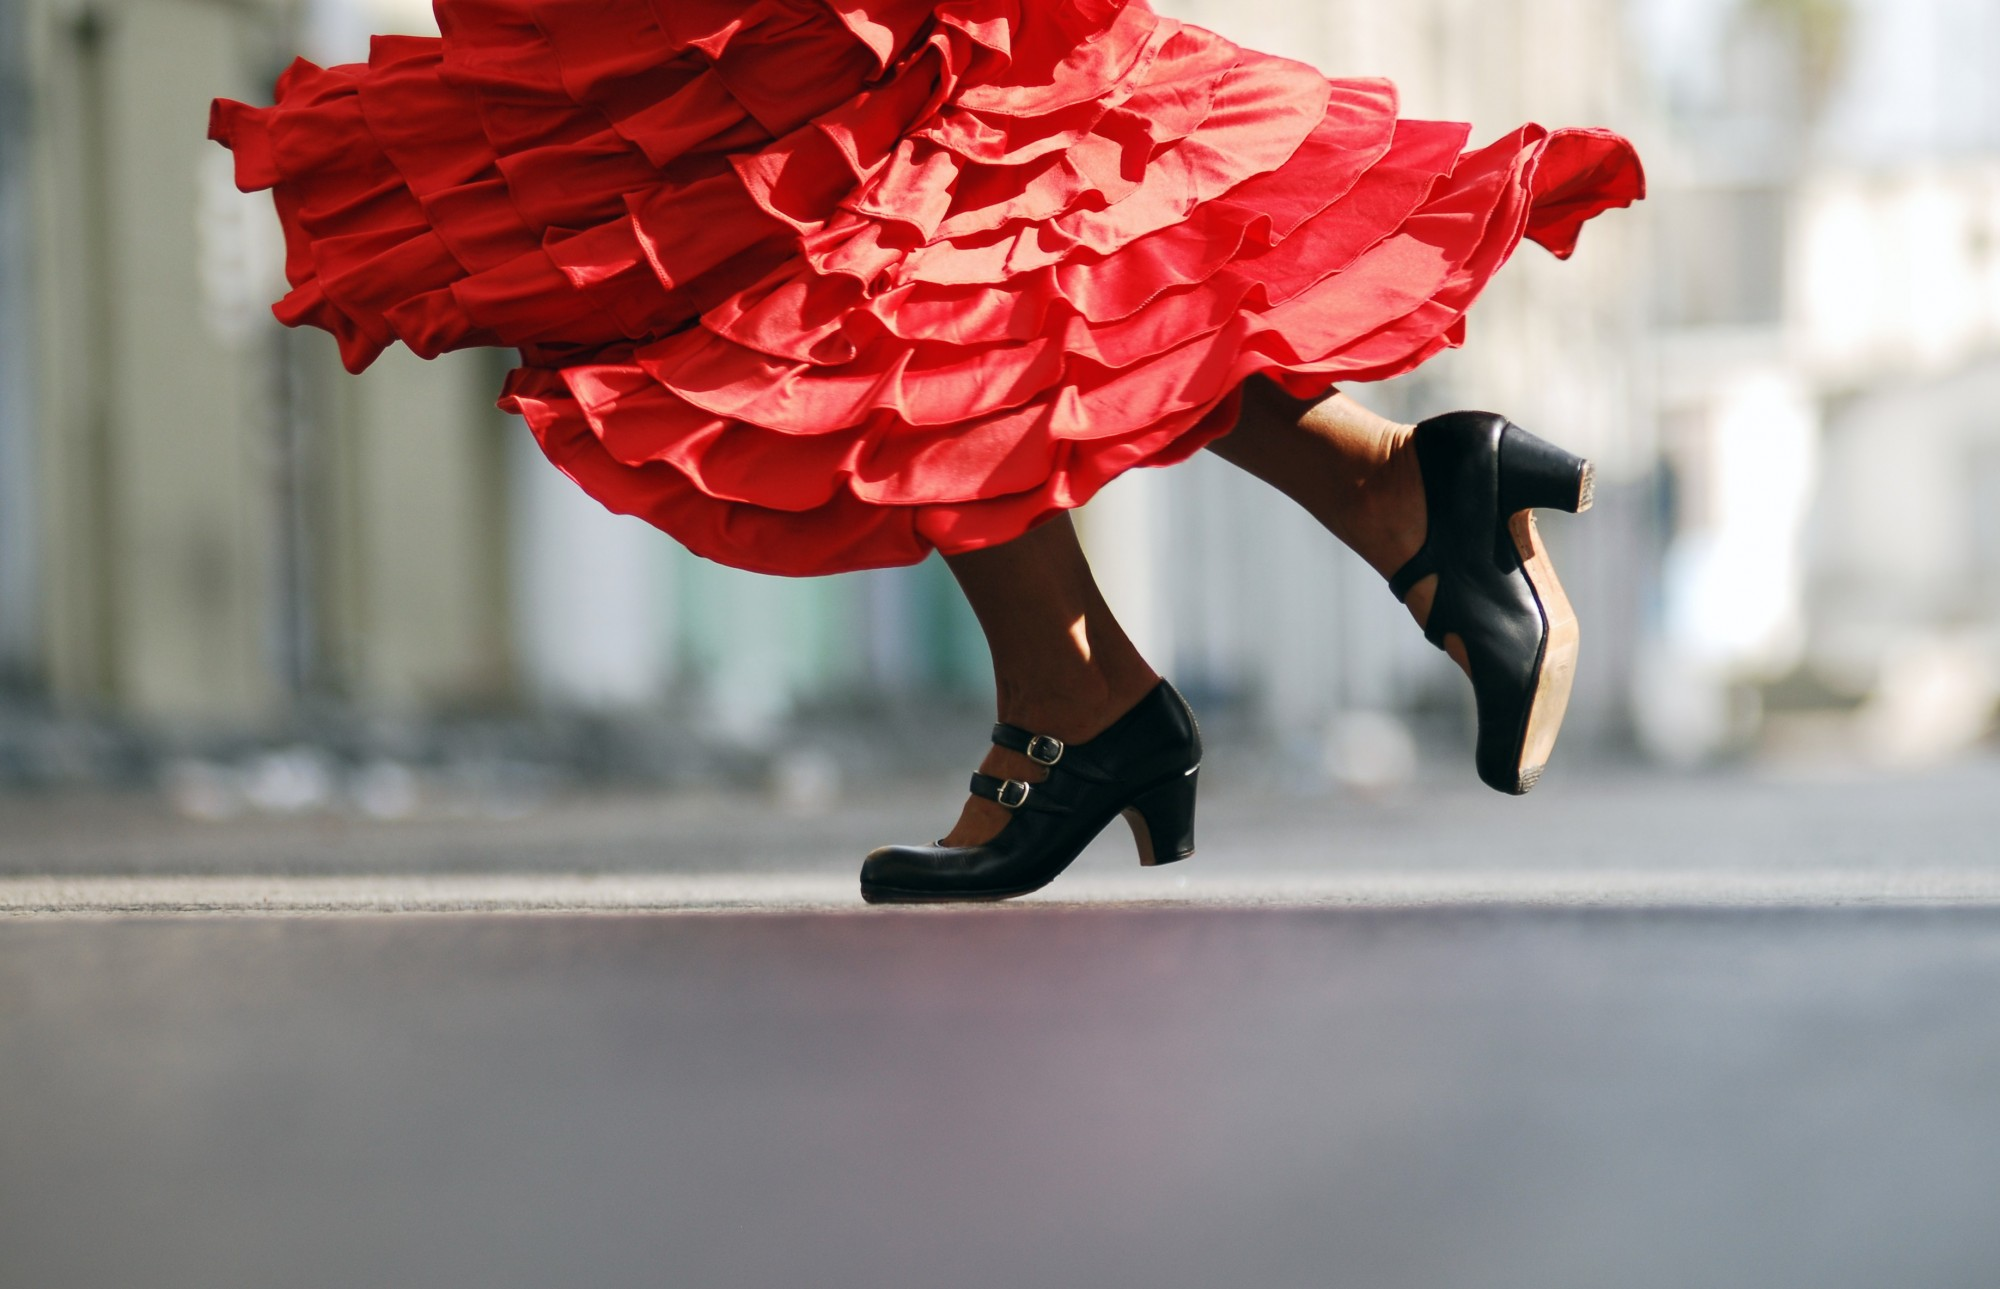 Female Flamenco dancers shoes with their dressing spinning around as they dance